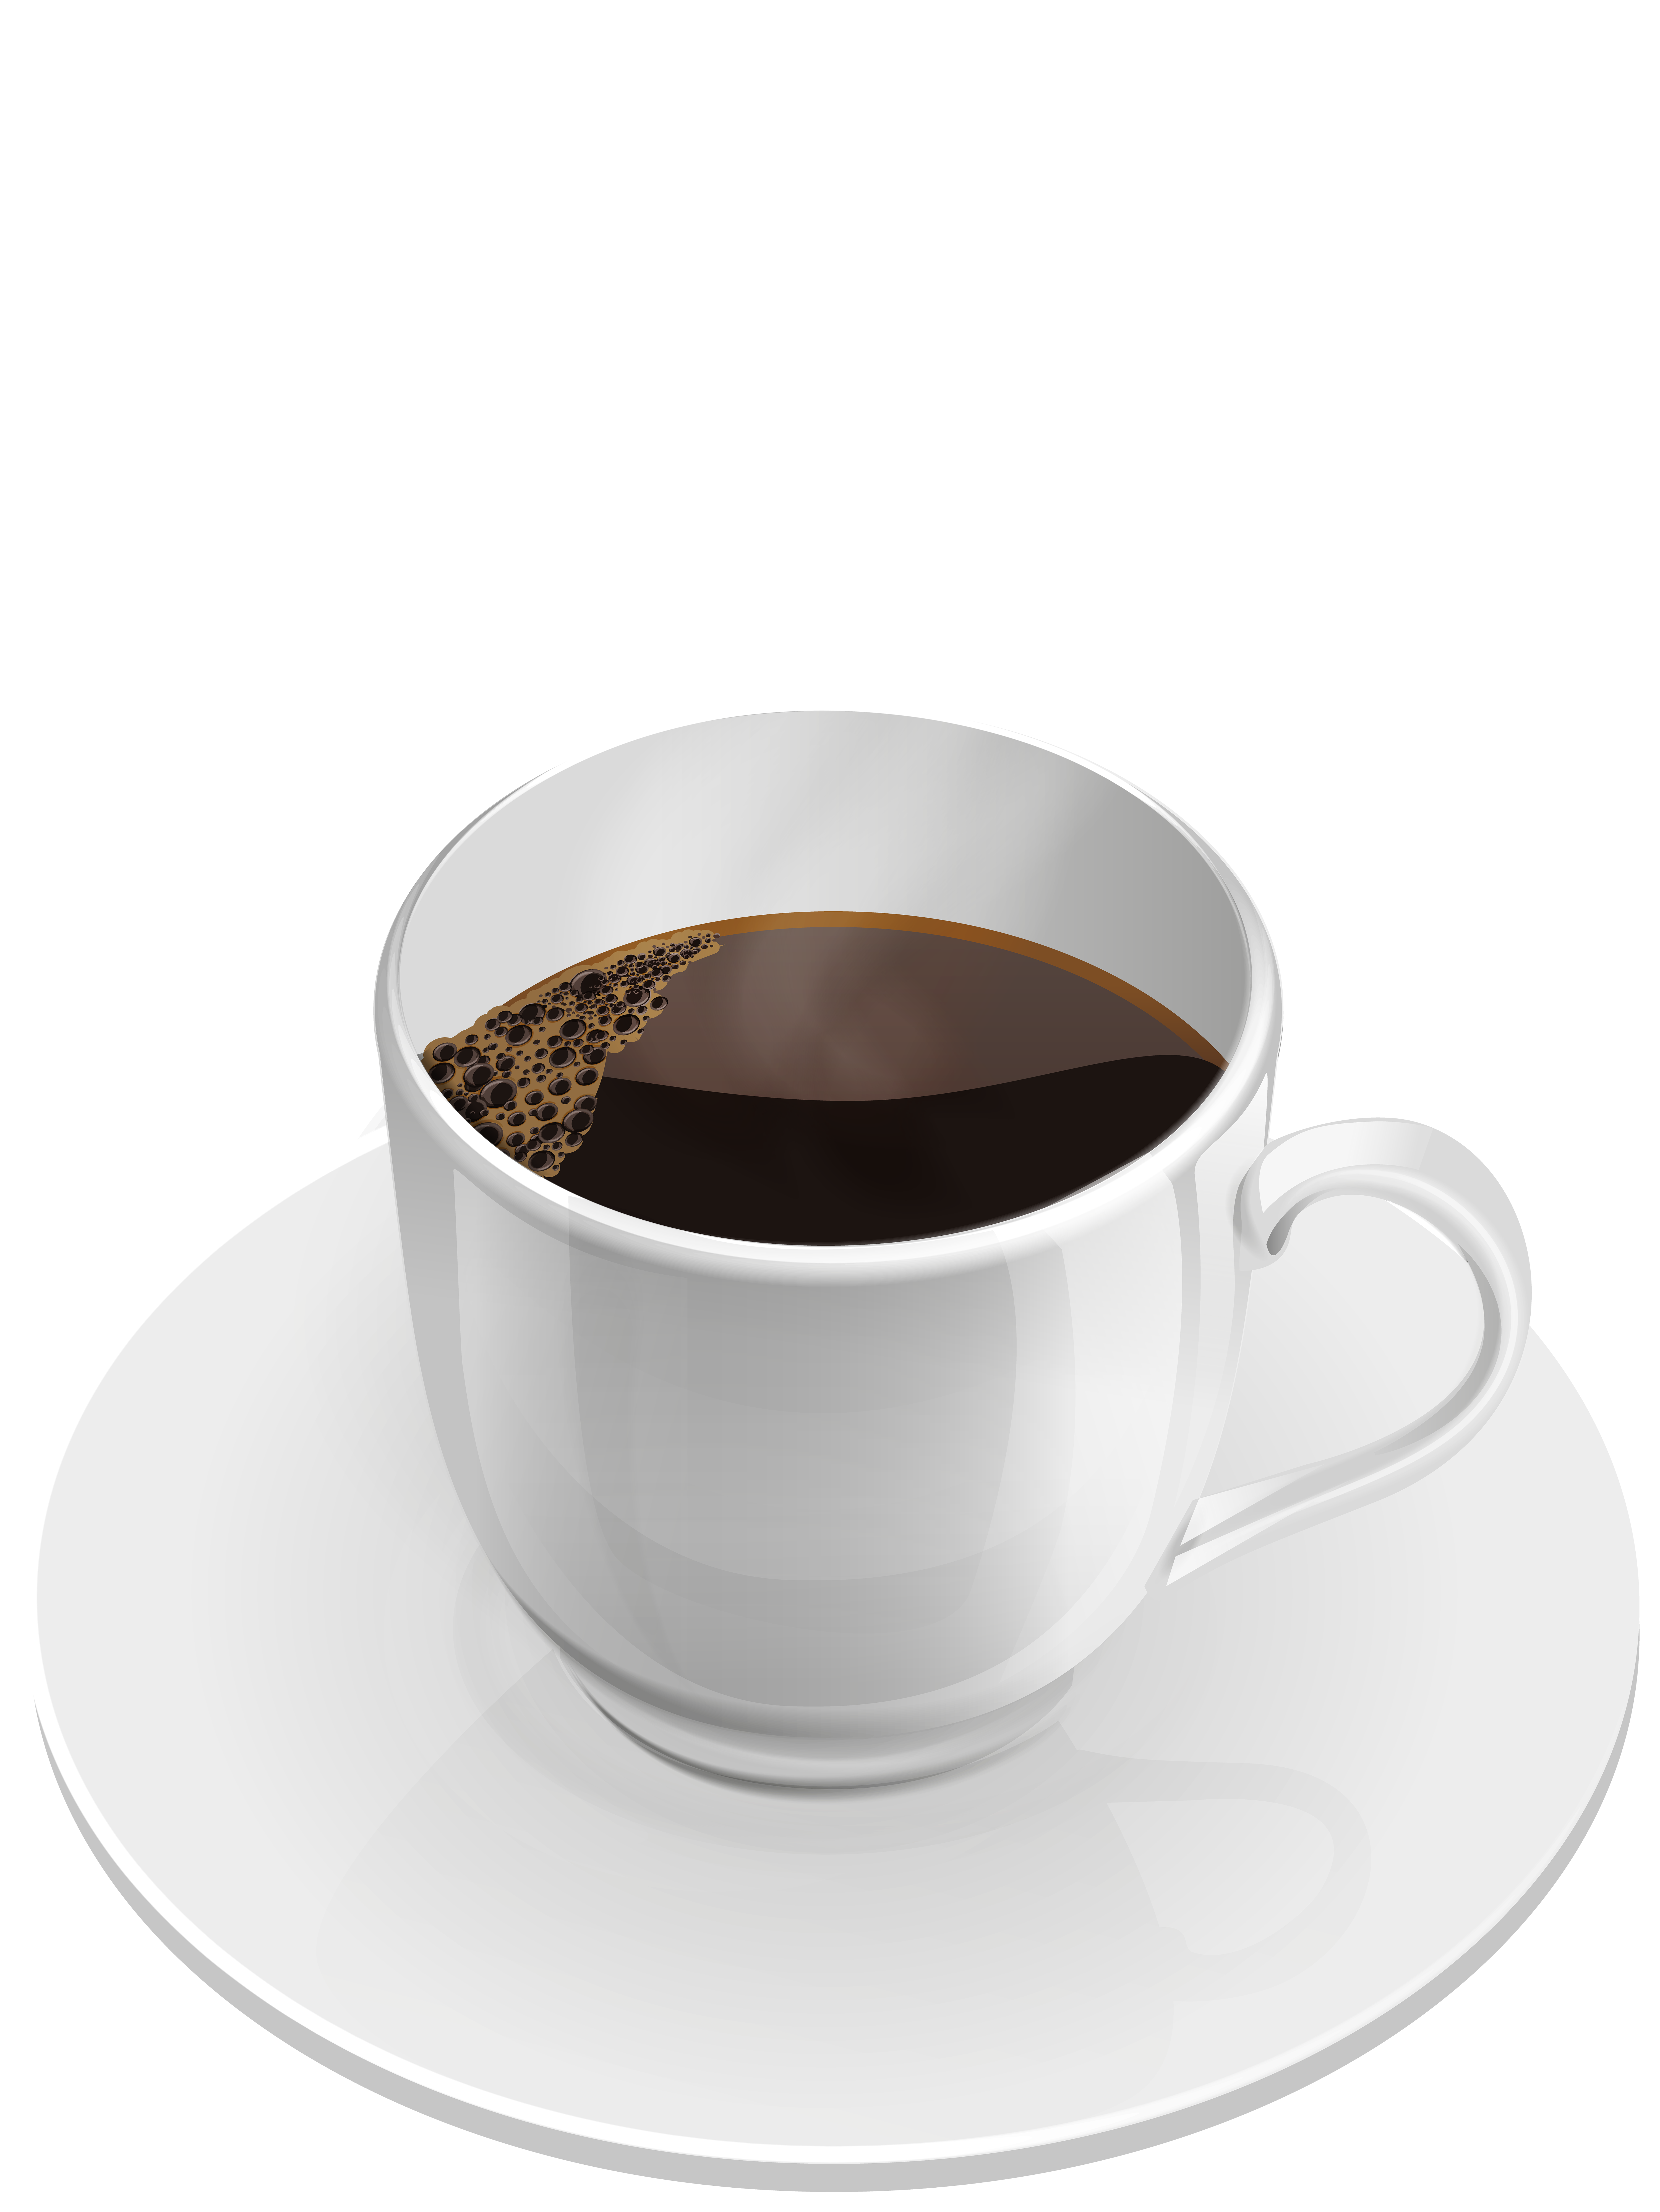 Coffee cup png. Hot clip art image